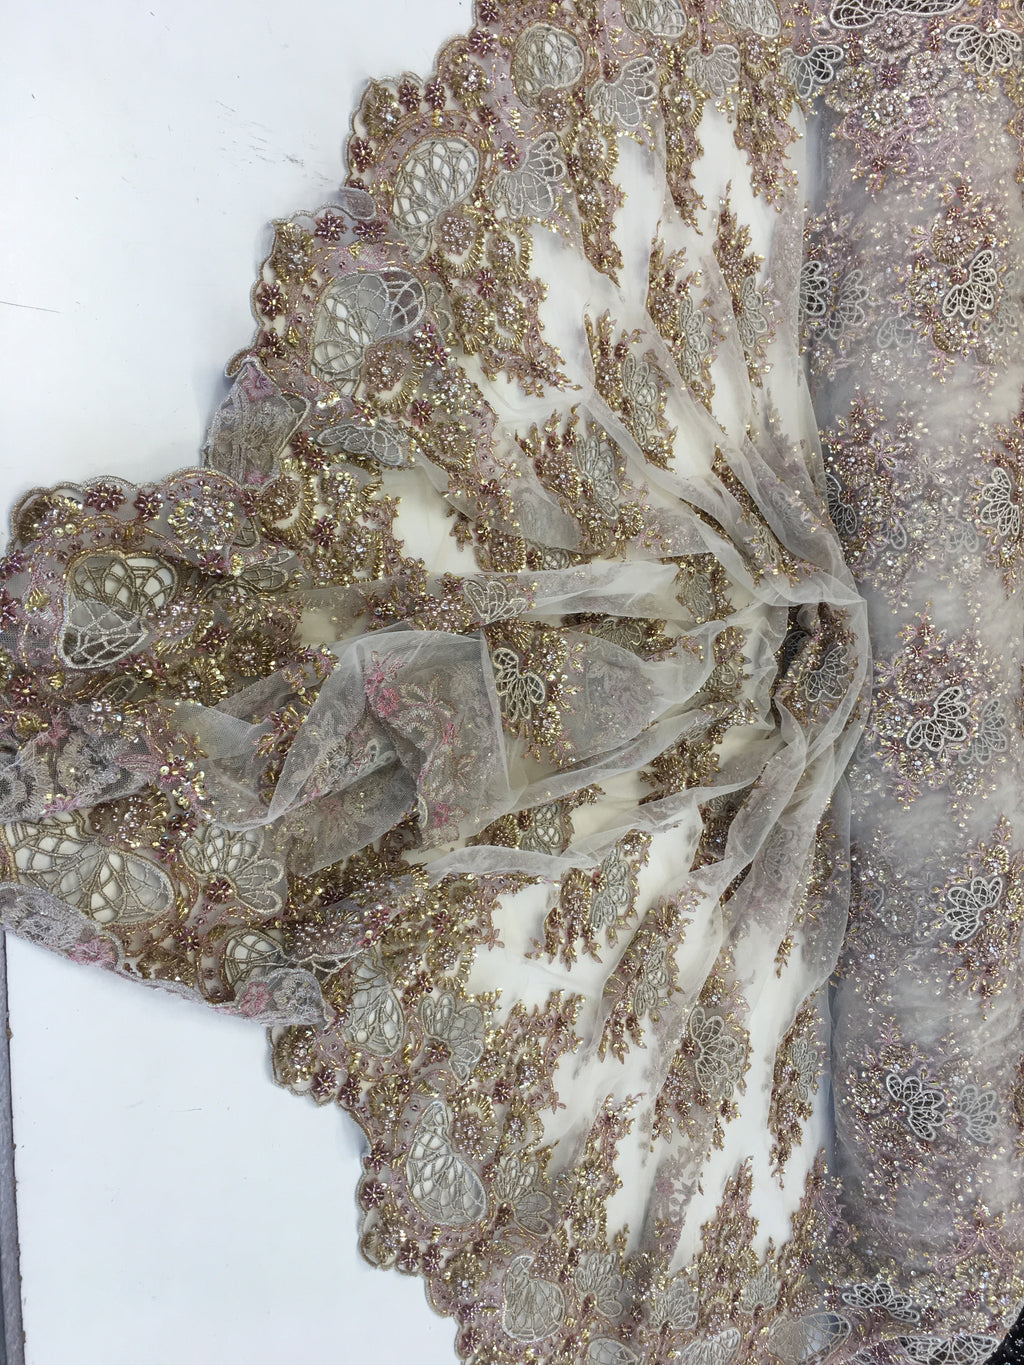 Zohar Designs Beaded Mesh Lace Taupe Beaded Fabric Lace Fabric By The Yard Embroider Beaded On A Mesh For Bridal Veil